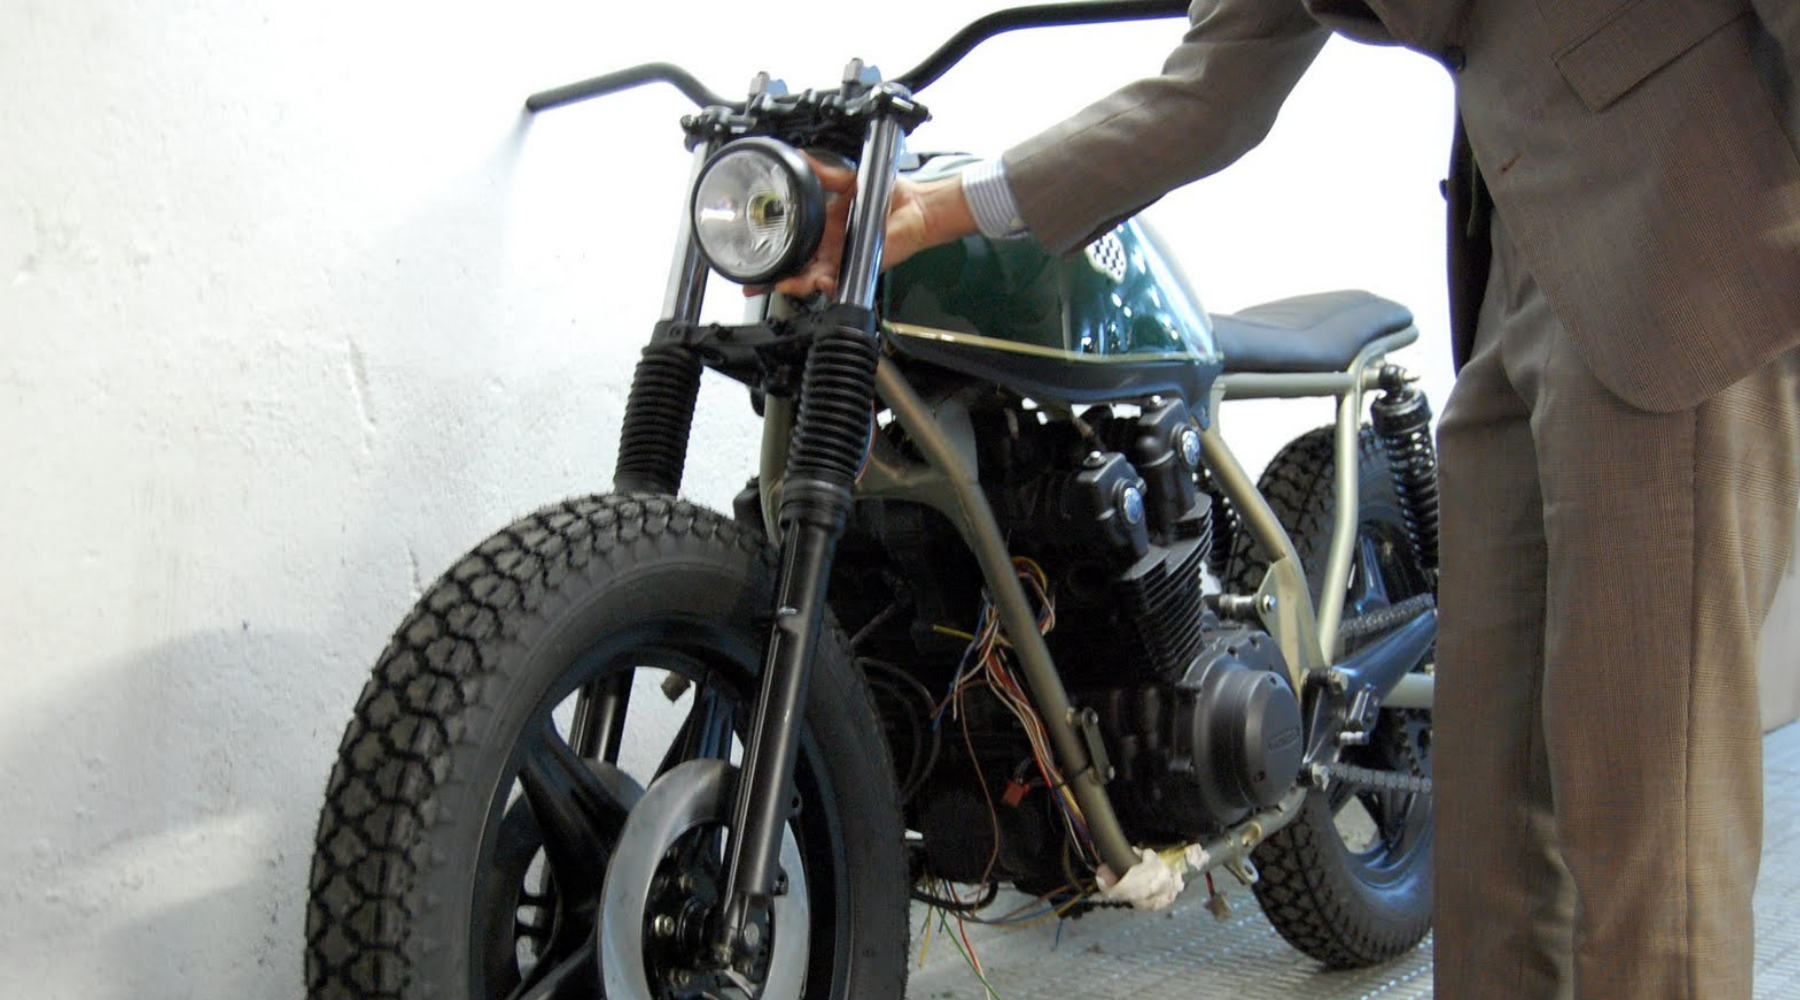 FRESH List of Cafe Racer Blogs and Sites that Accept Guest Posts wallpaper